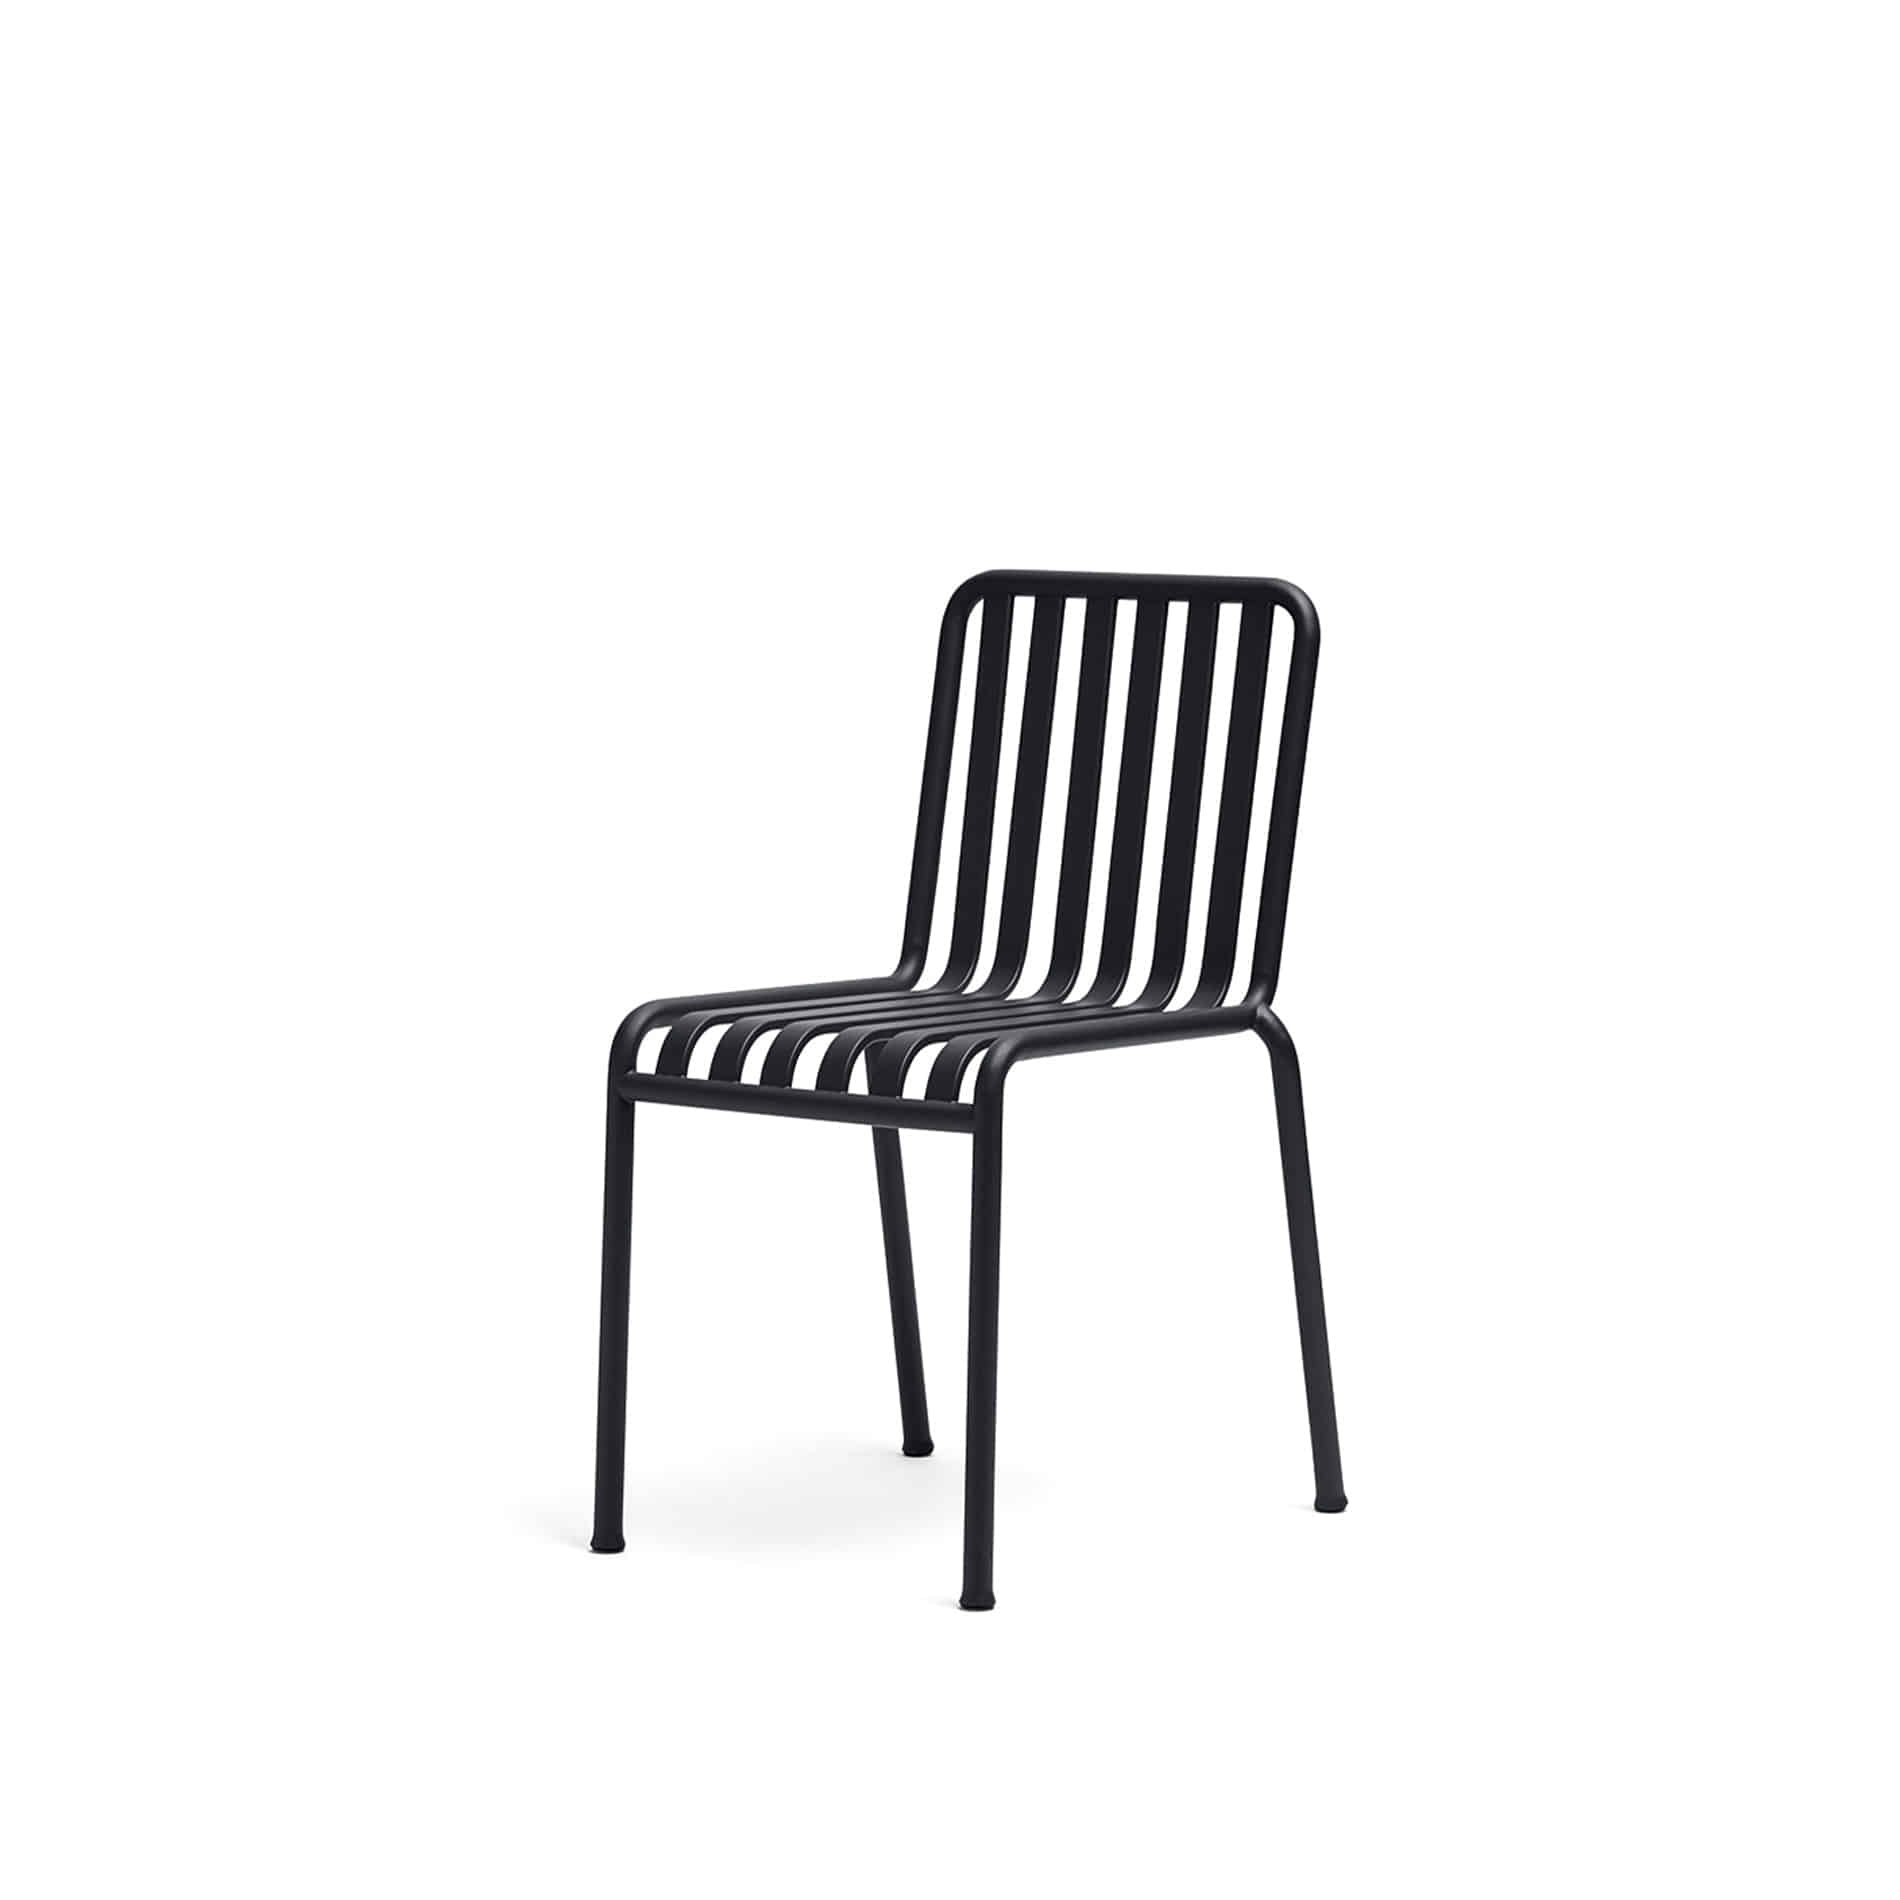 [HAY] Palissade Chair Anthracite / 팔리사드 체어 블랙